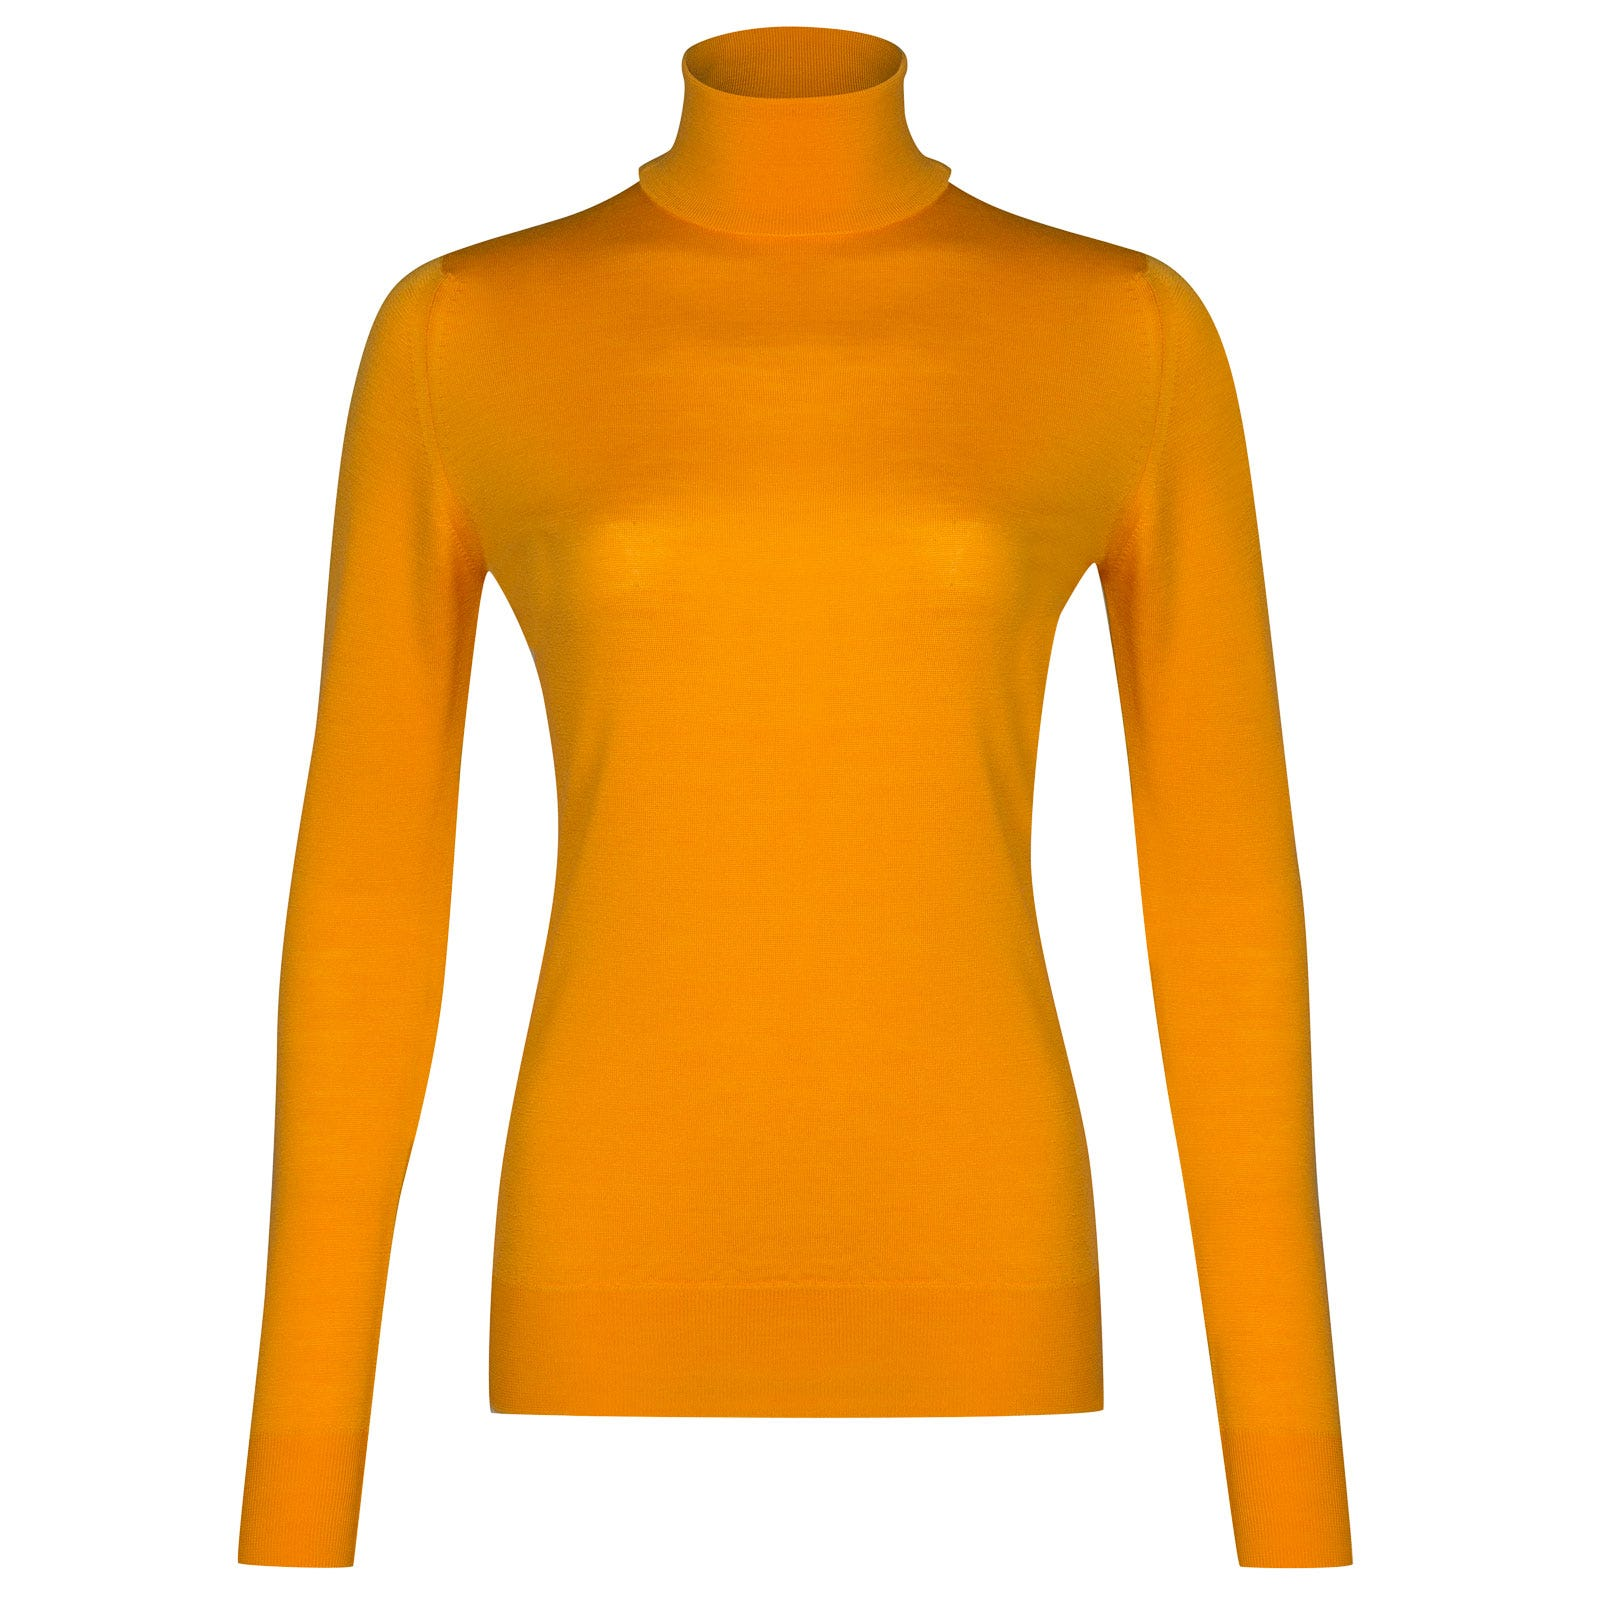 John Smedley Catkin Merino Wool Sweater in Buckthorn Orange-XL